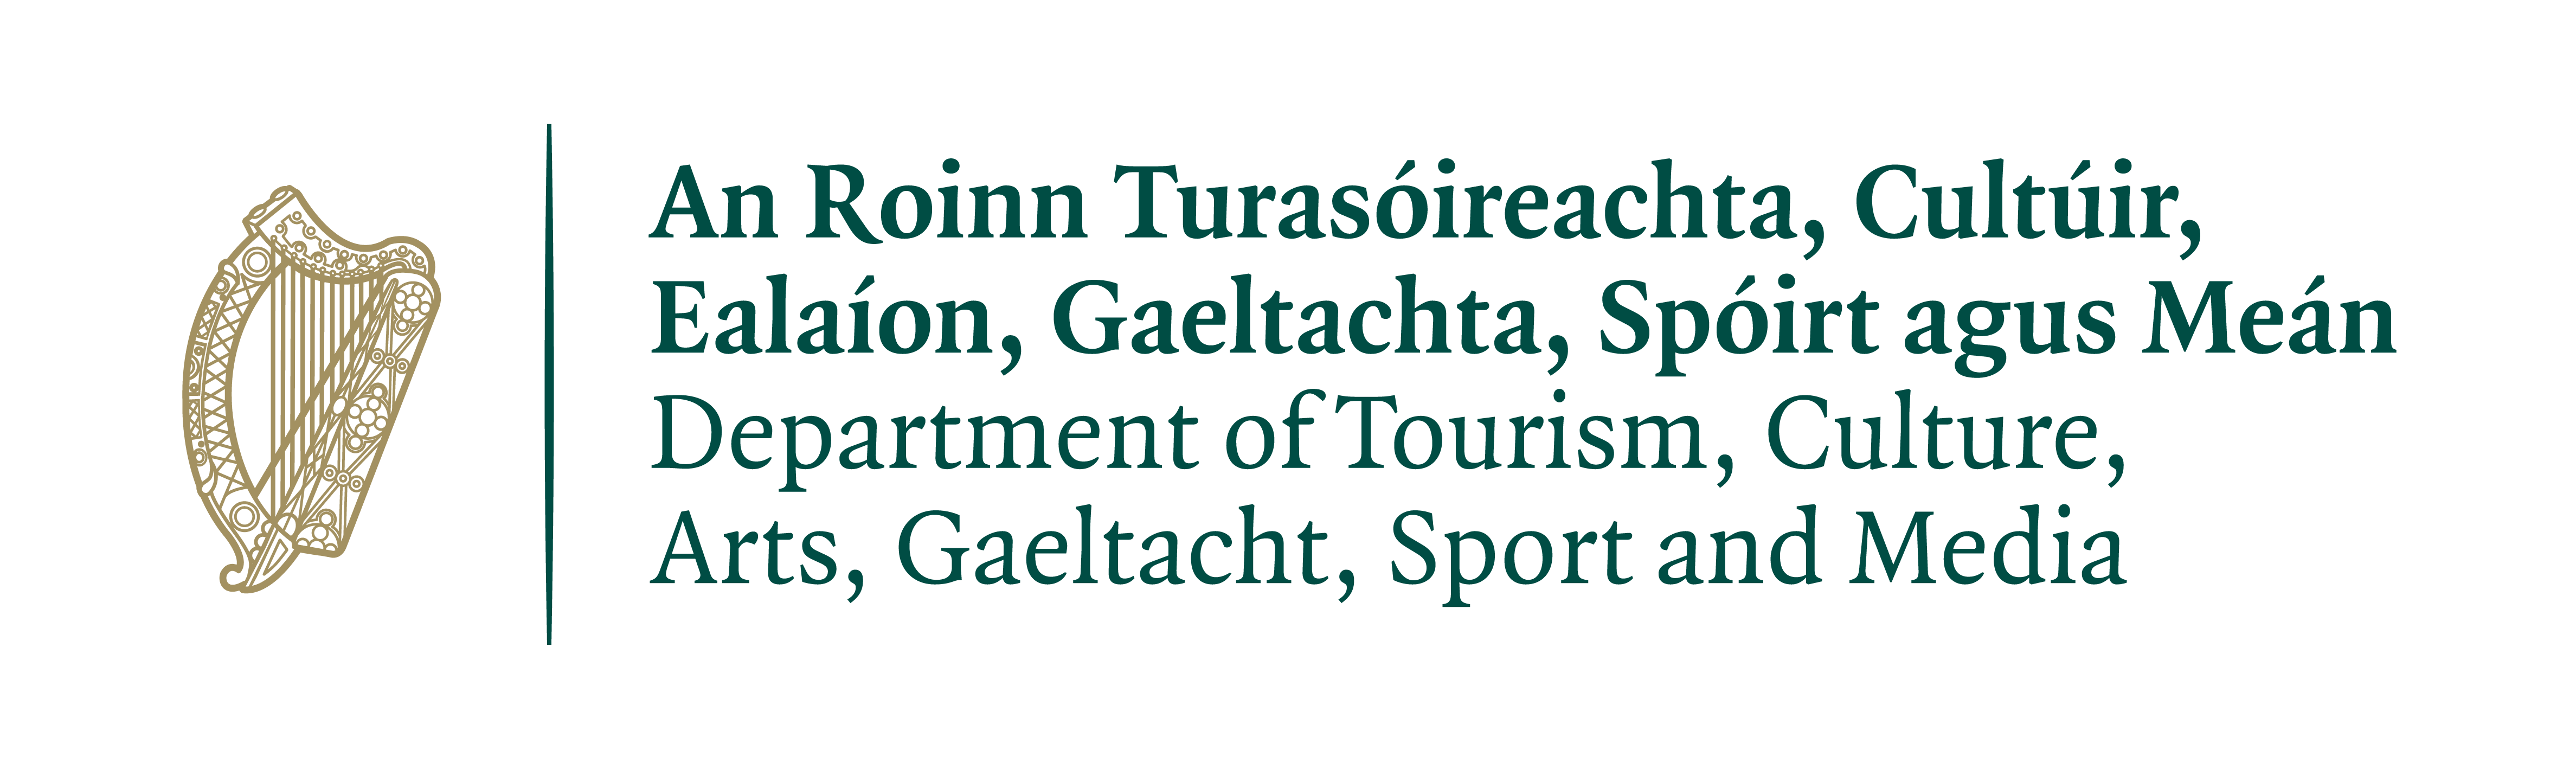 List: Department of Tourism, Culture, Arts, Gaeltacht, Sport and Media mark